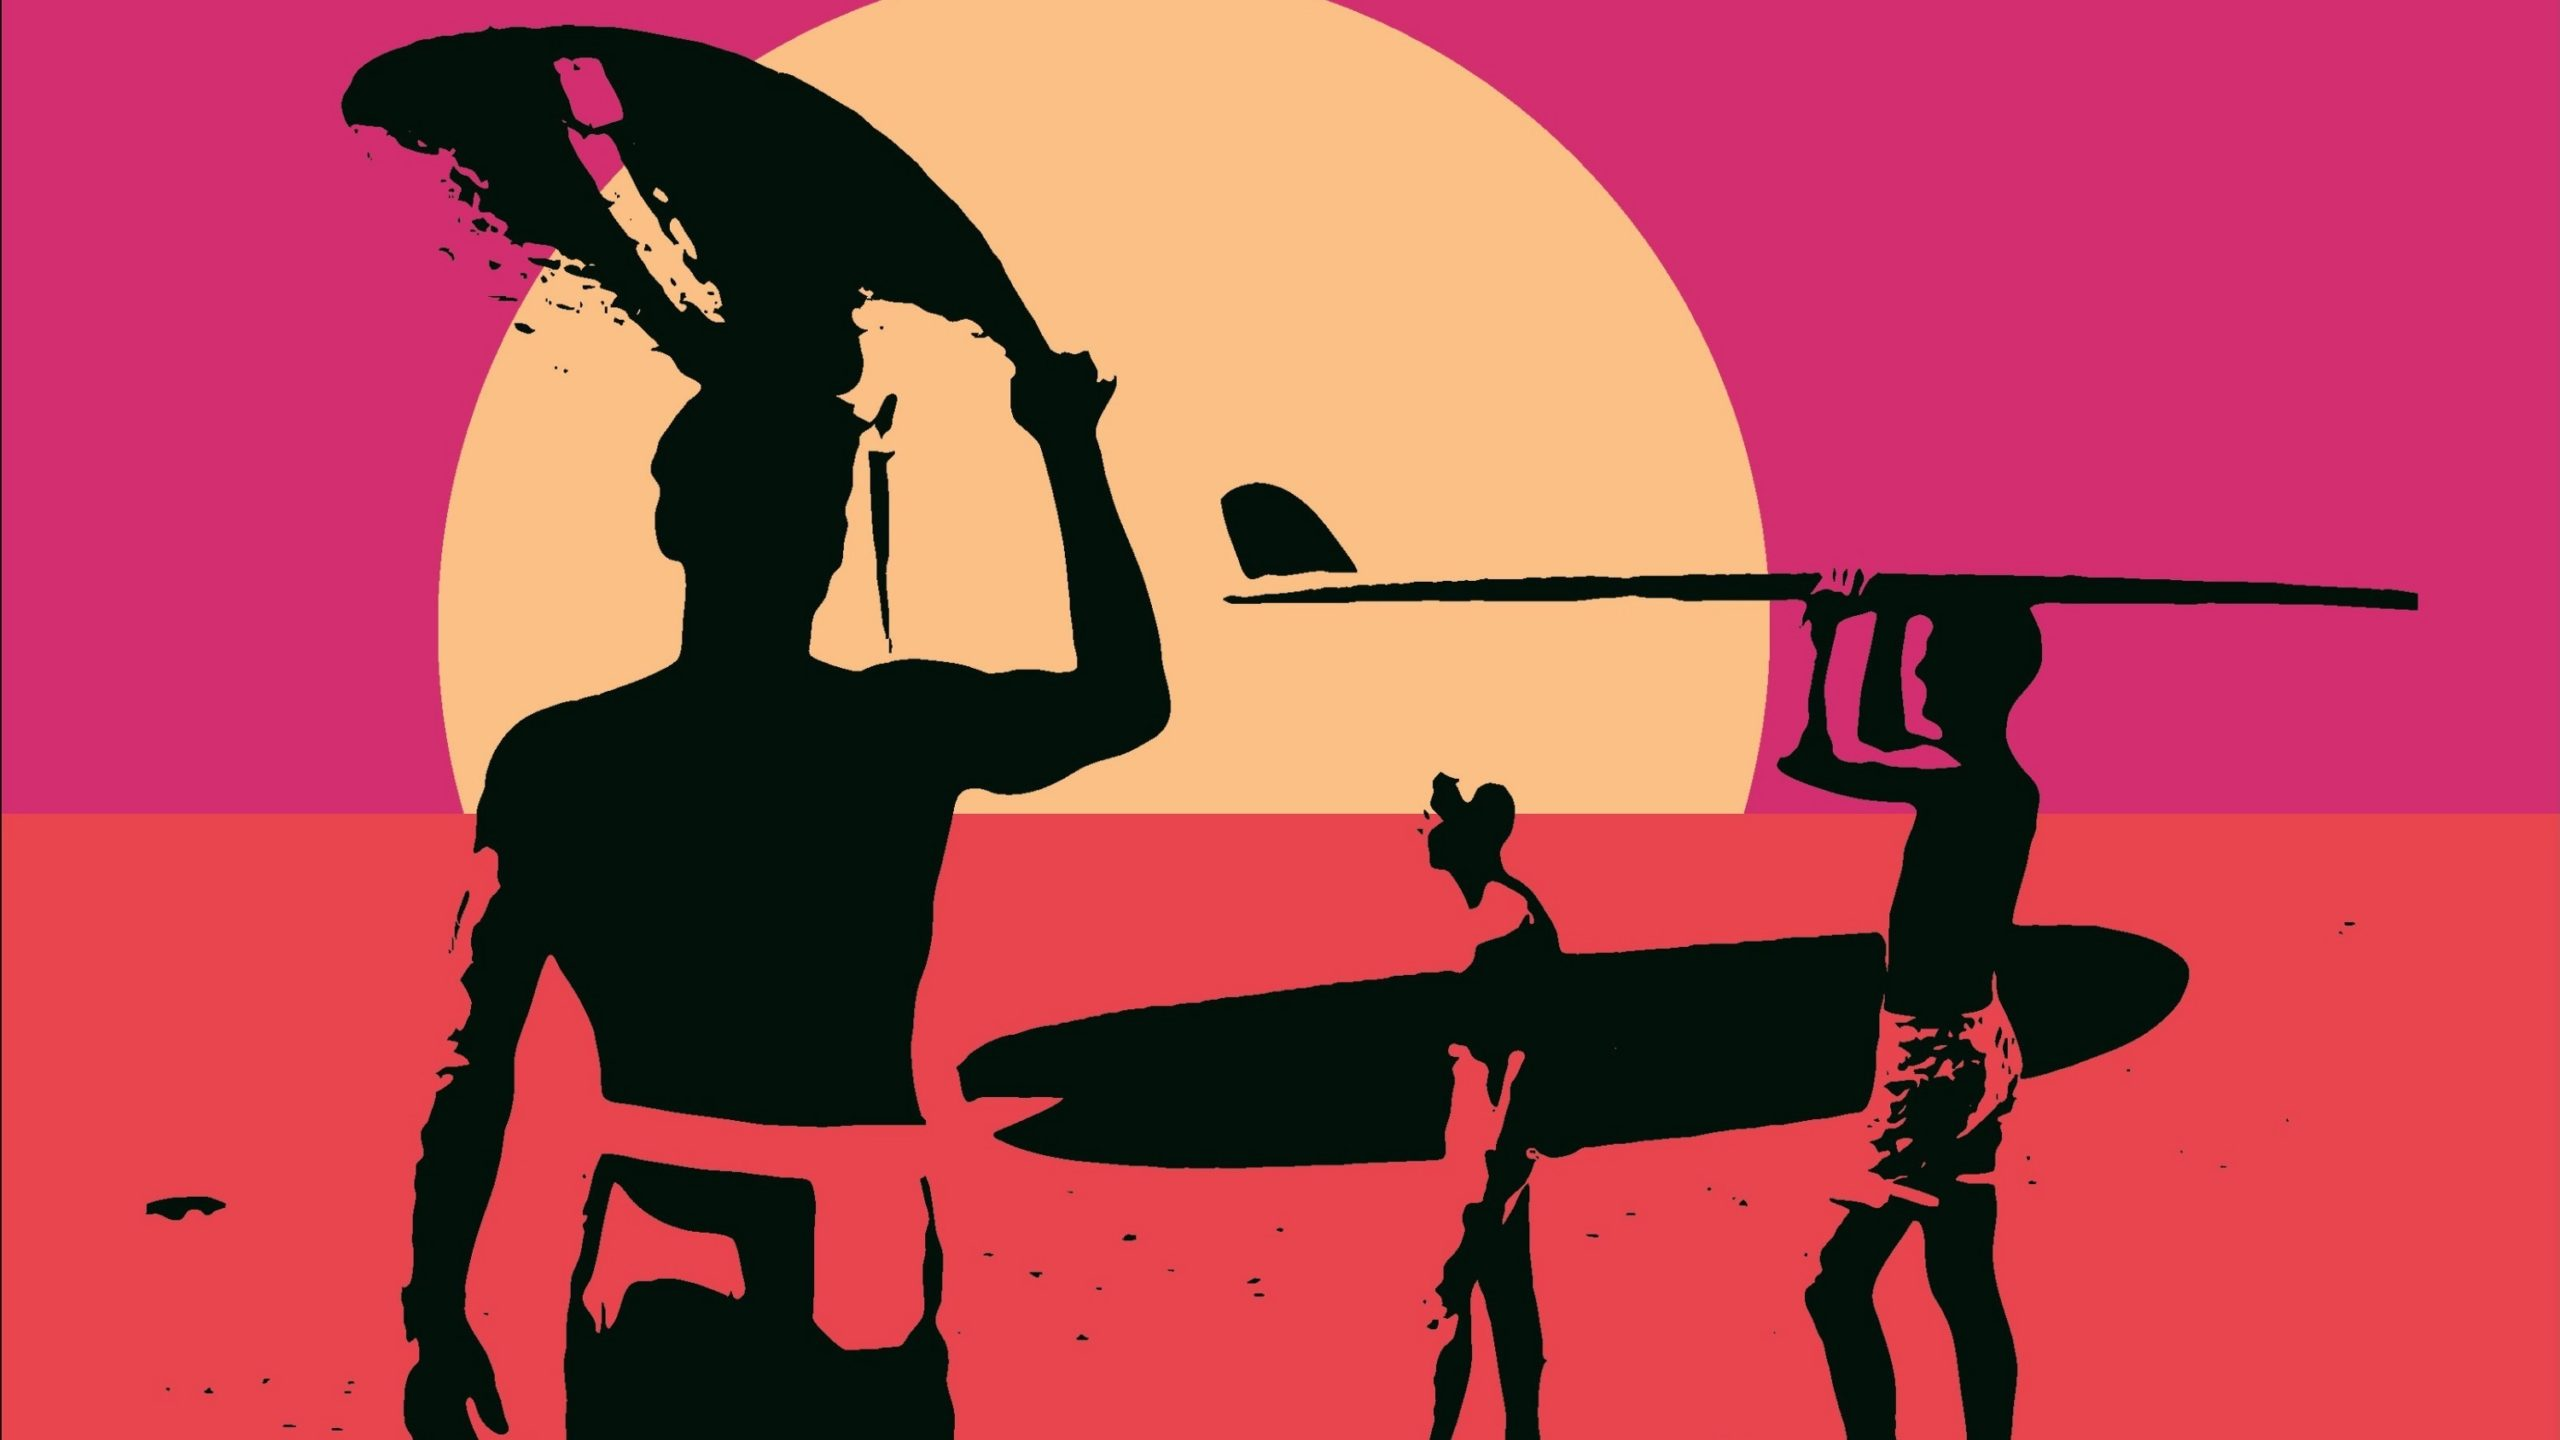 A pop-art style poster depicting three men carrying surfboards.